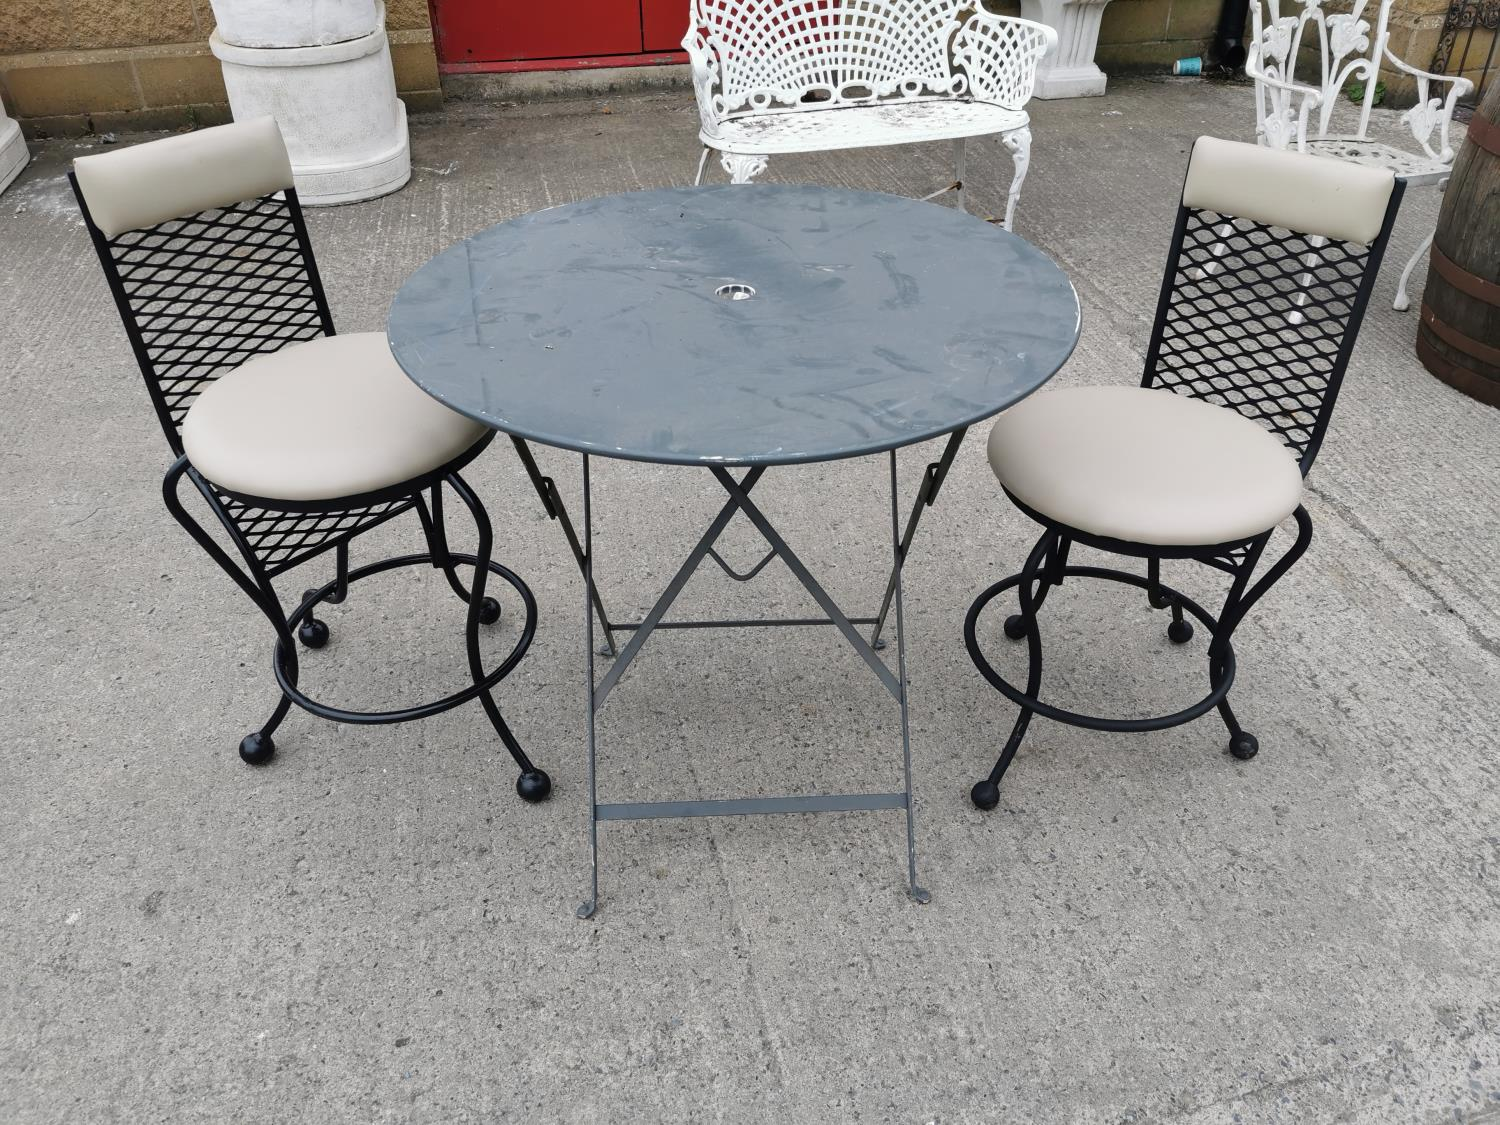 Wrought iron garden table and two chairs.